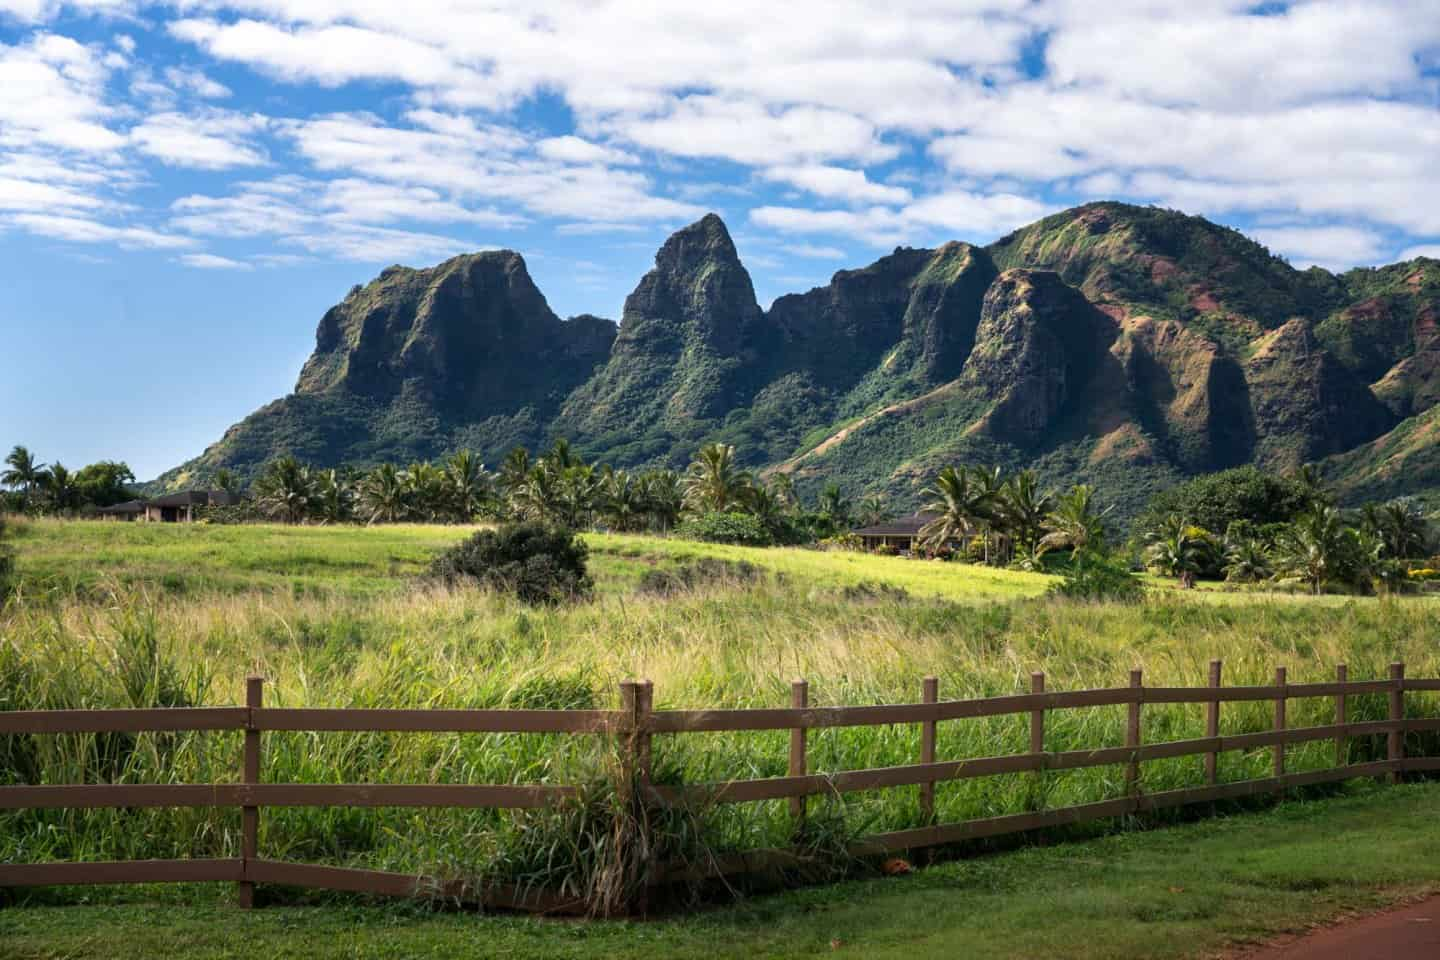 Some of the best Kauai photography locations are out in the middle of nowhere.